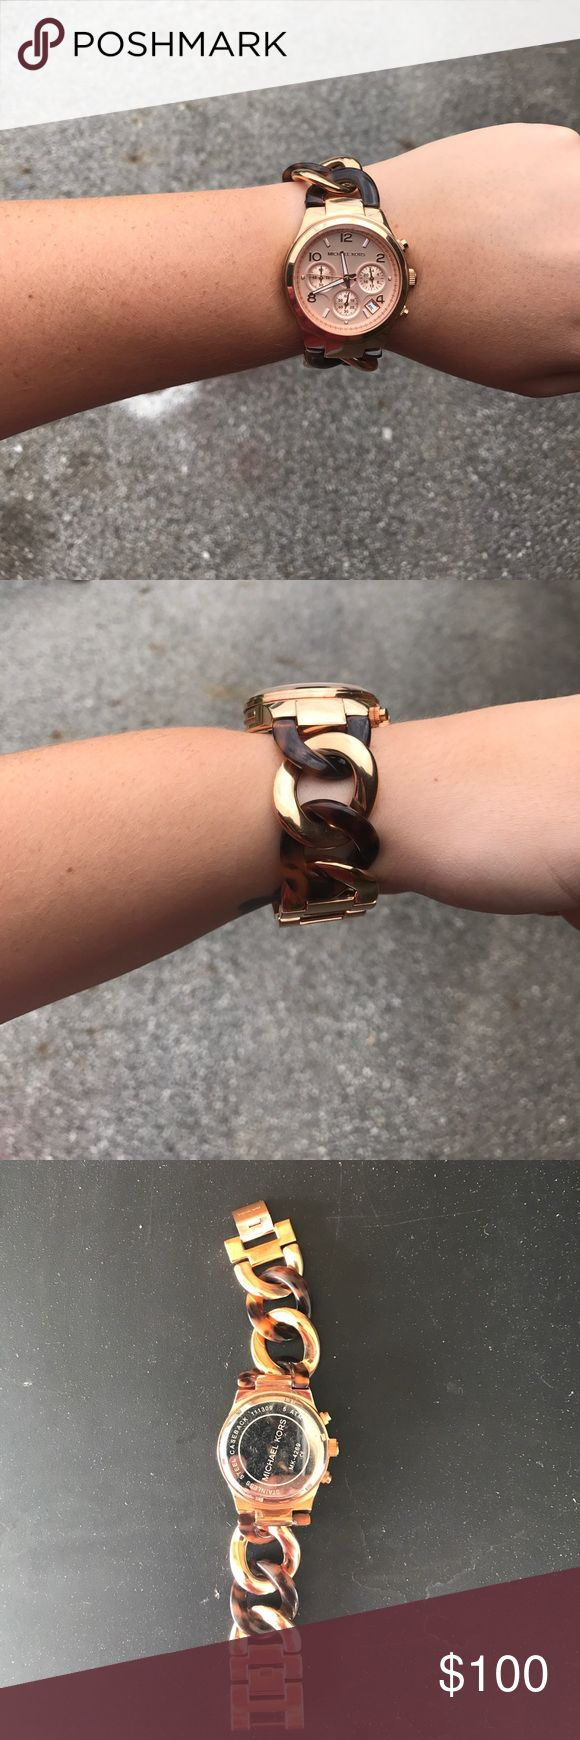 Michael Kors Rose Gold and Tortoise Shell Watch Authentic MK Rose gold and Tortoise shell link watch. Only worn once! Just replaced the battery, works like it is brand new. MICHAEL Michael Kors Accessories Watches